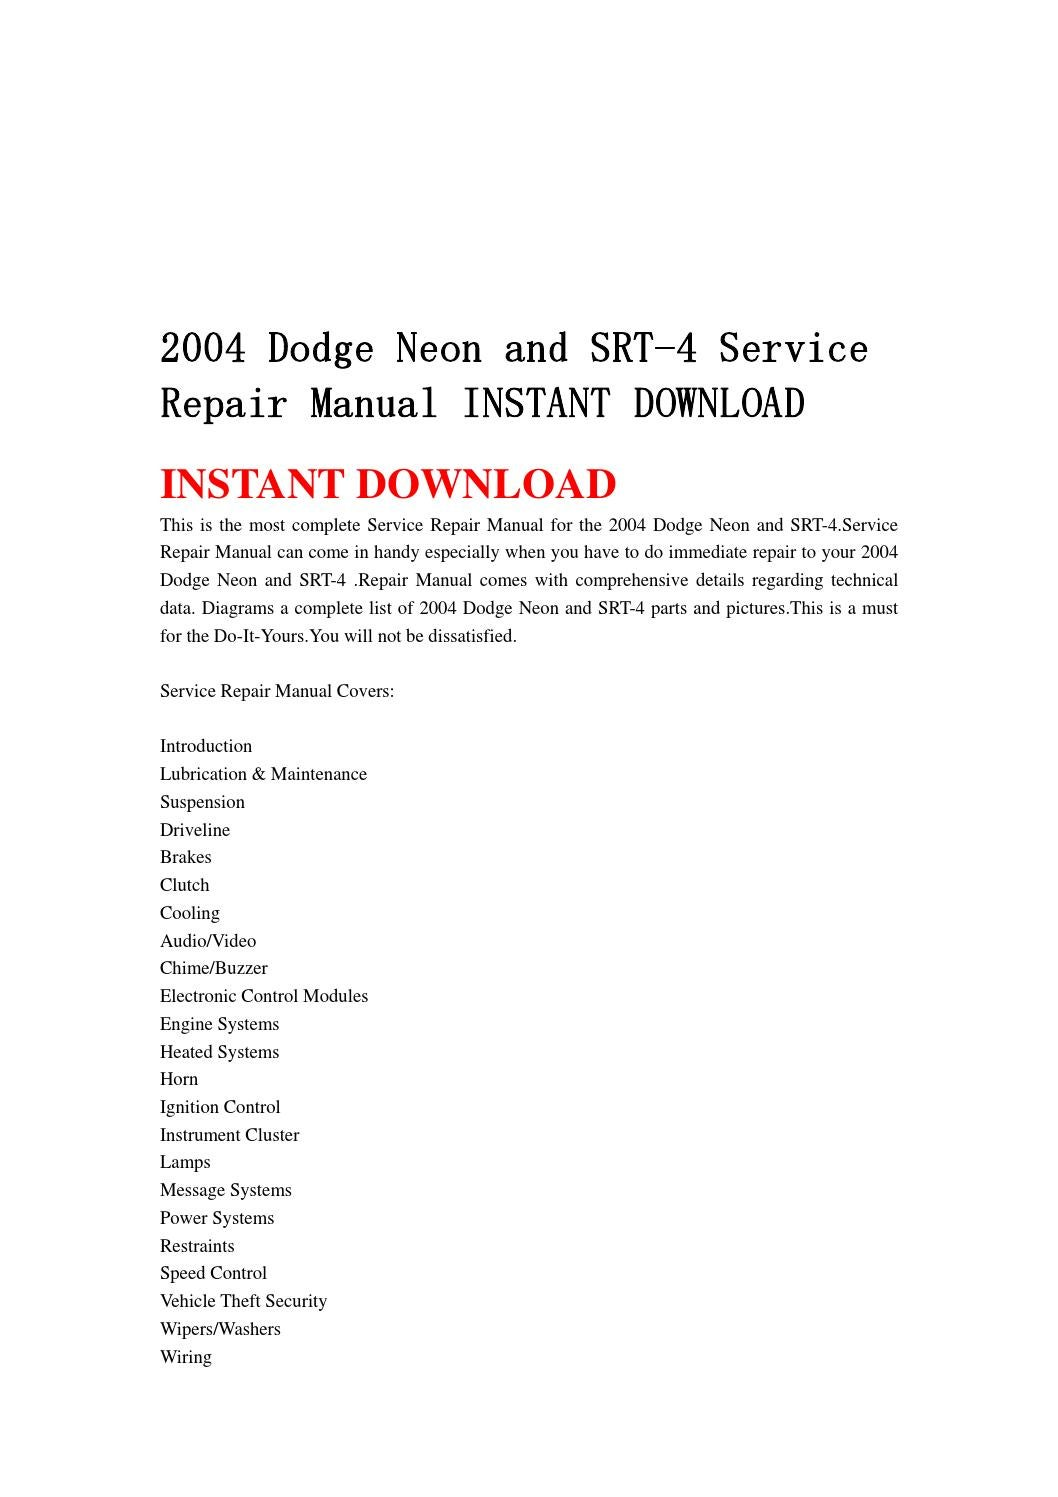 2004 dodge neon srt 4 radio wiring diagram ge profile arctica parts and service repair manual instant